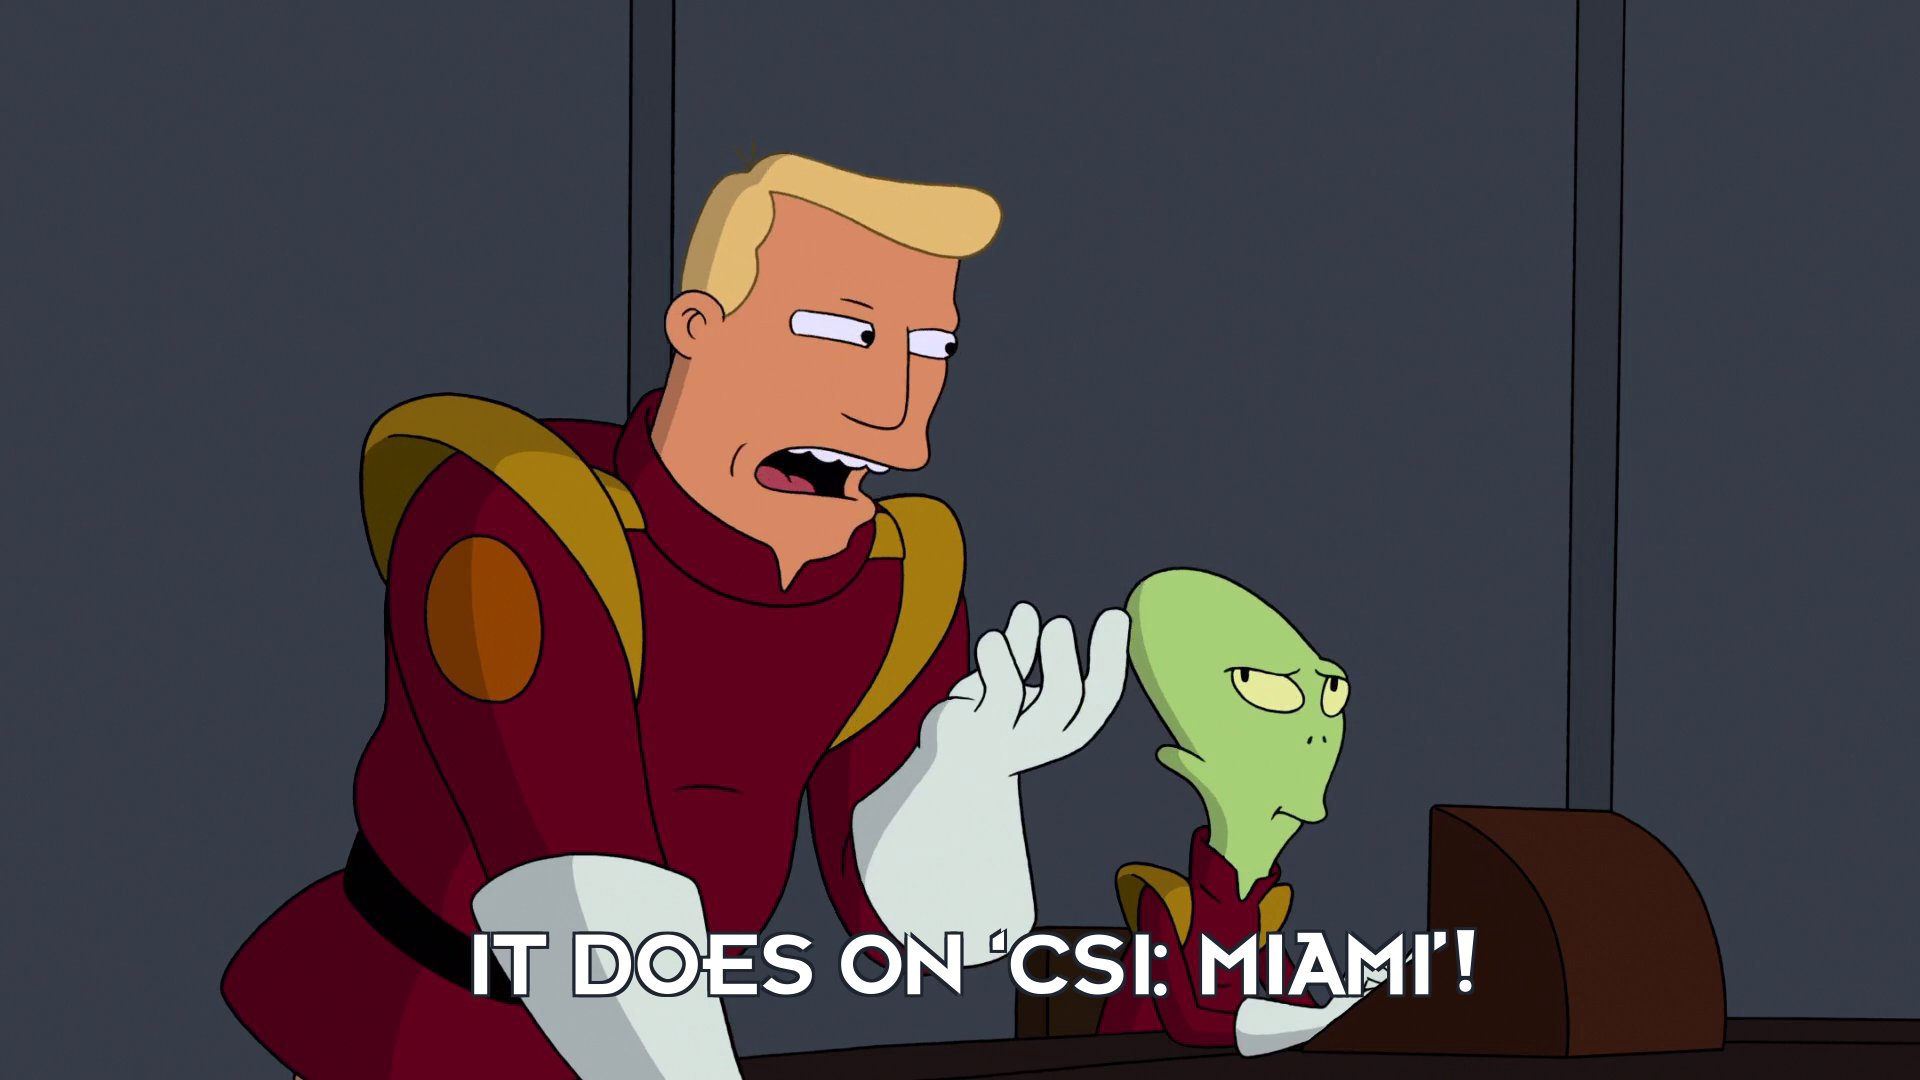 Zapp Brannigan: It does on 'CSI: Miami'!